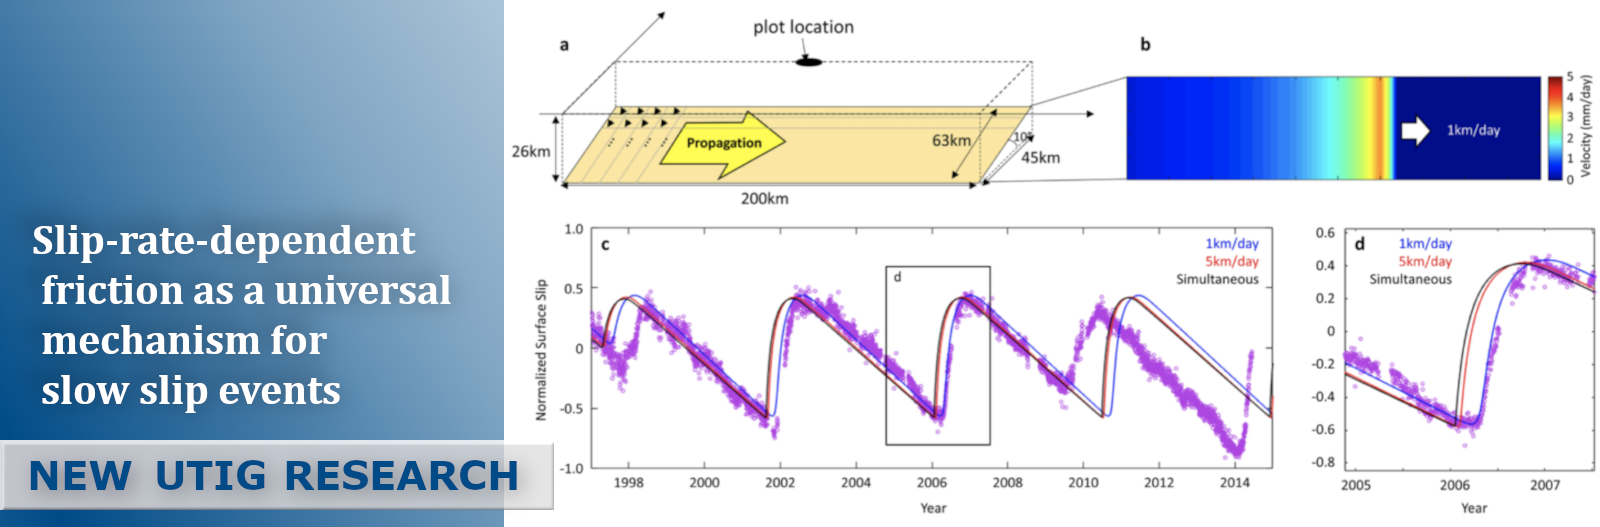 Banner for Slip-rate-dependent friction as a universal mechanism for slow slip events